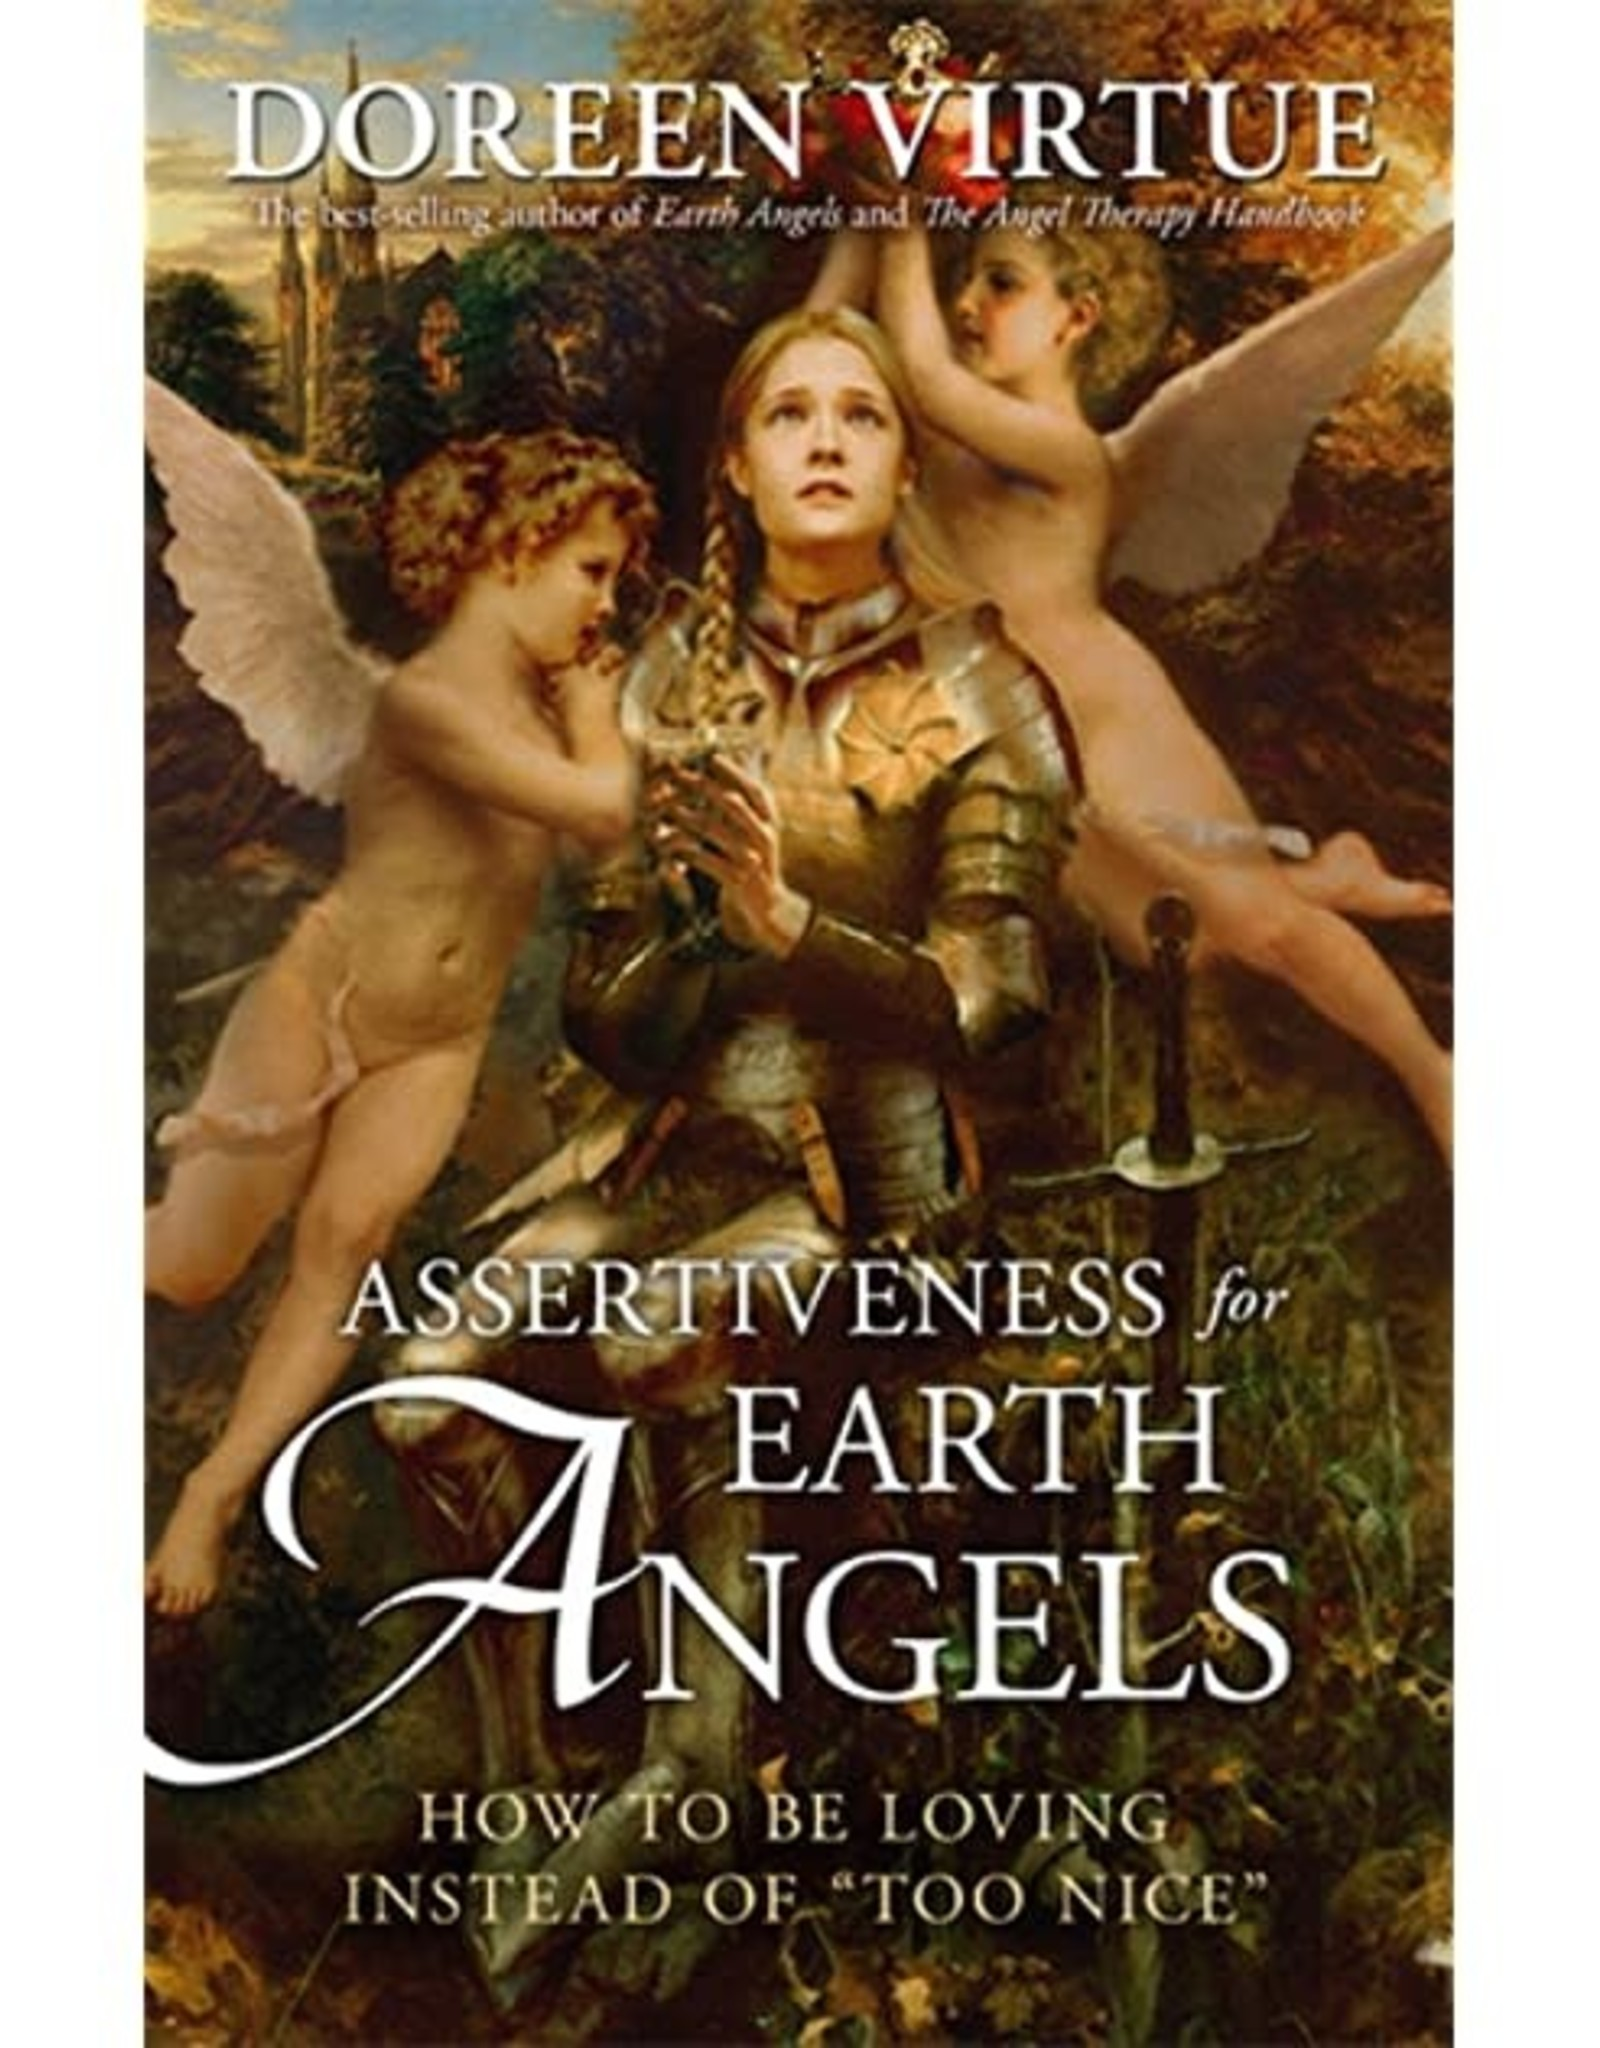 Doreen Virtue Assertiveness for Earth Angels By Doreen Virtue